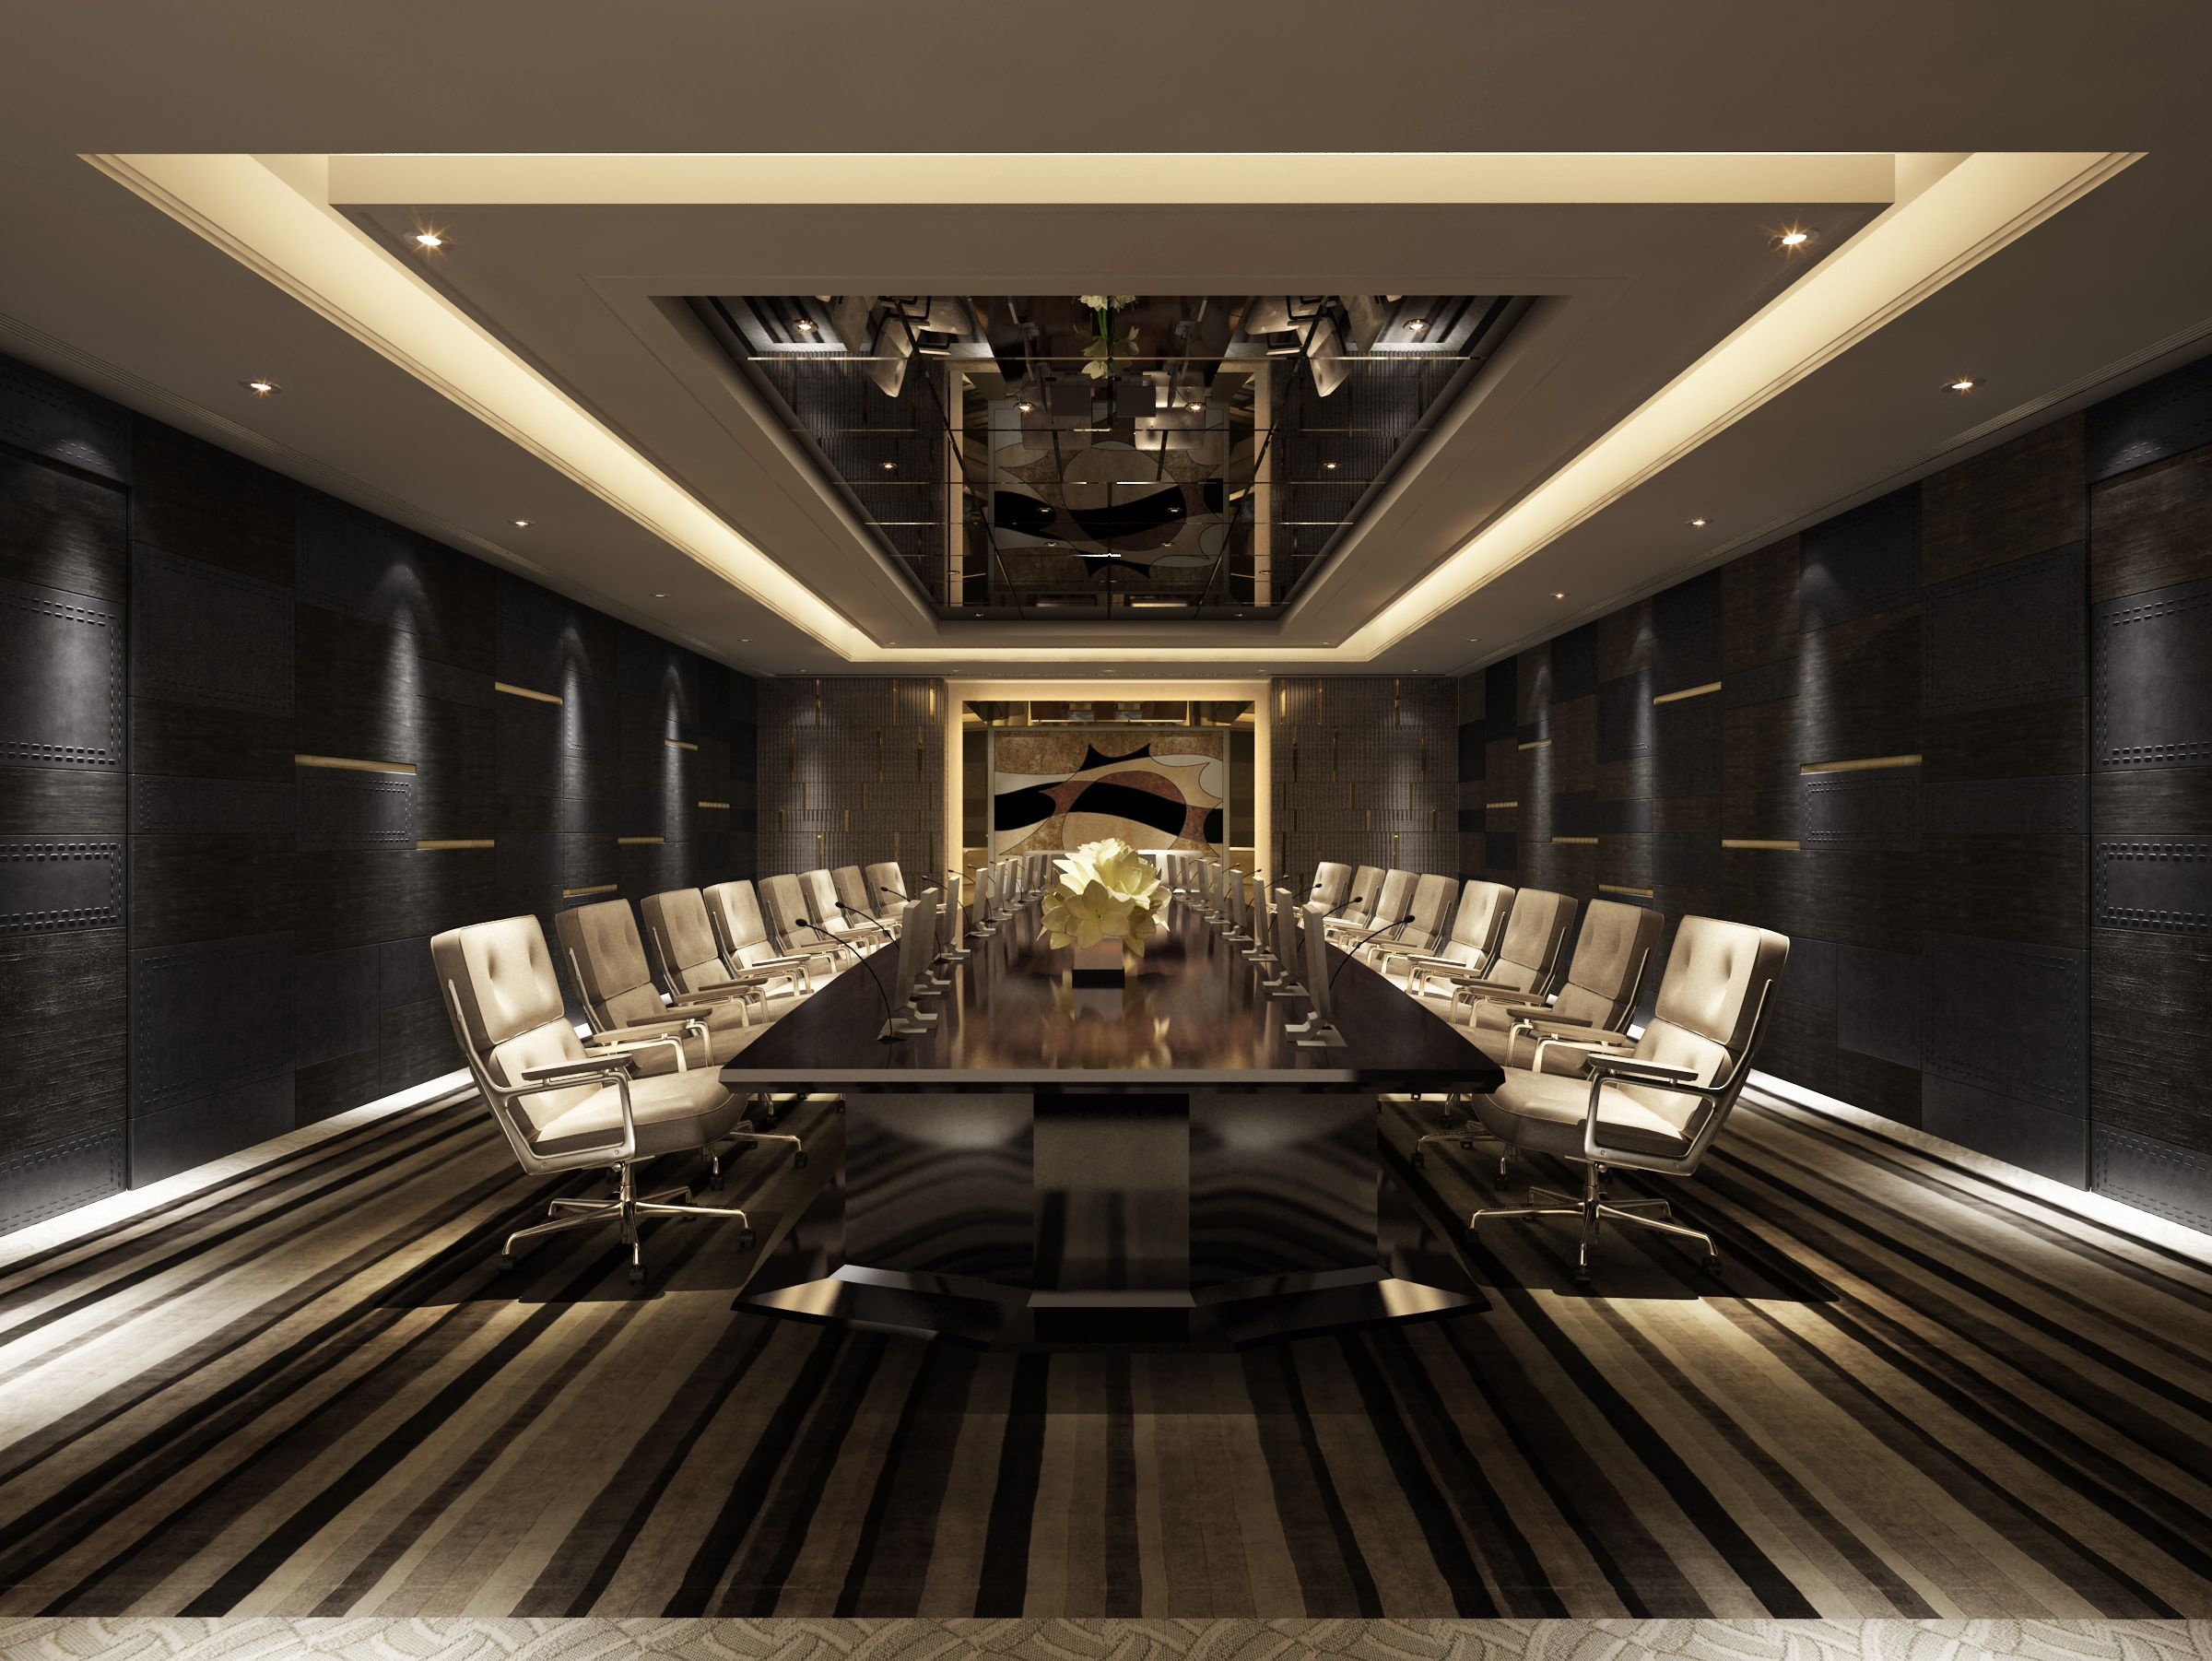 Image result for LUXURY CONFERENCE ROOM   CONFERENCE ROOM ...  Luxury Meeting Space